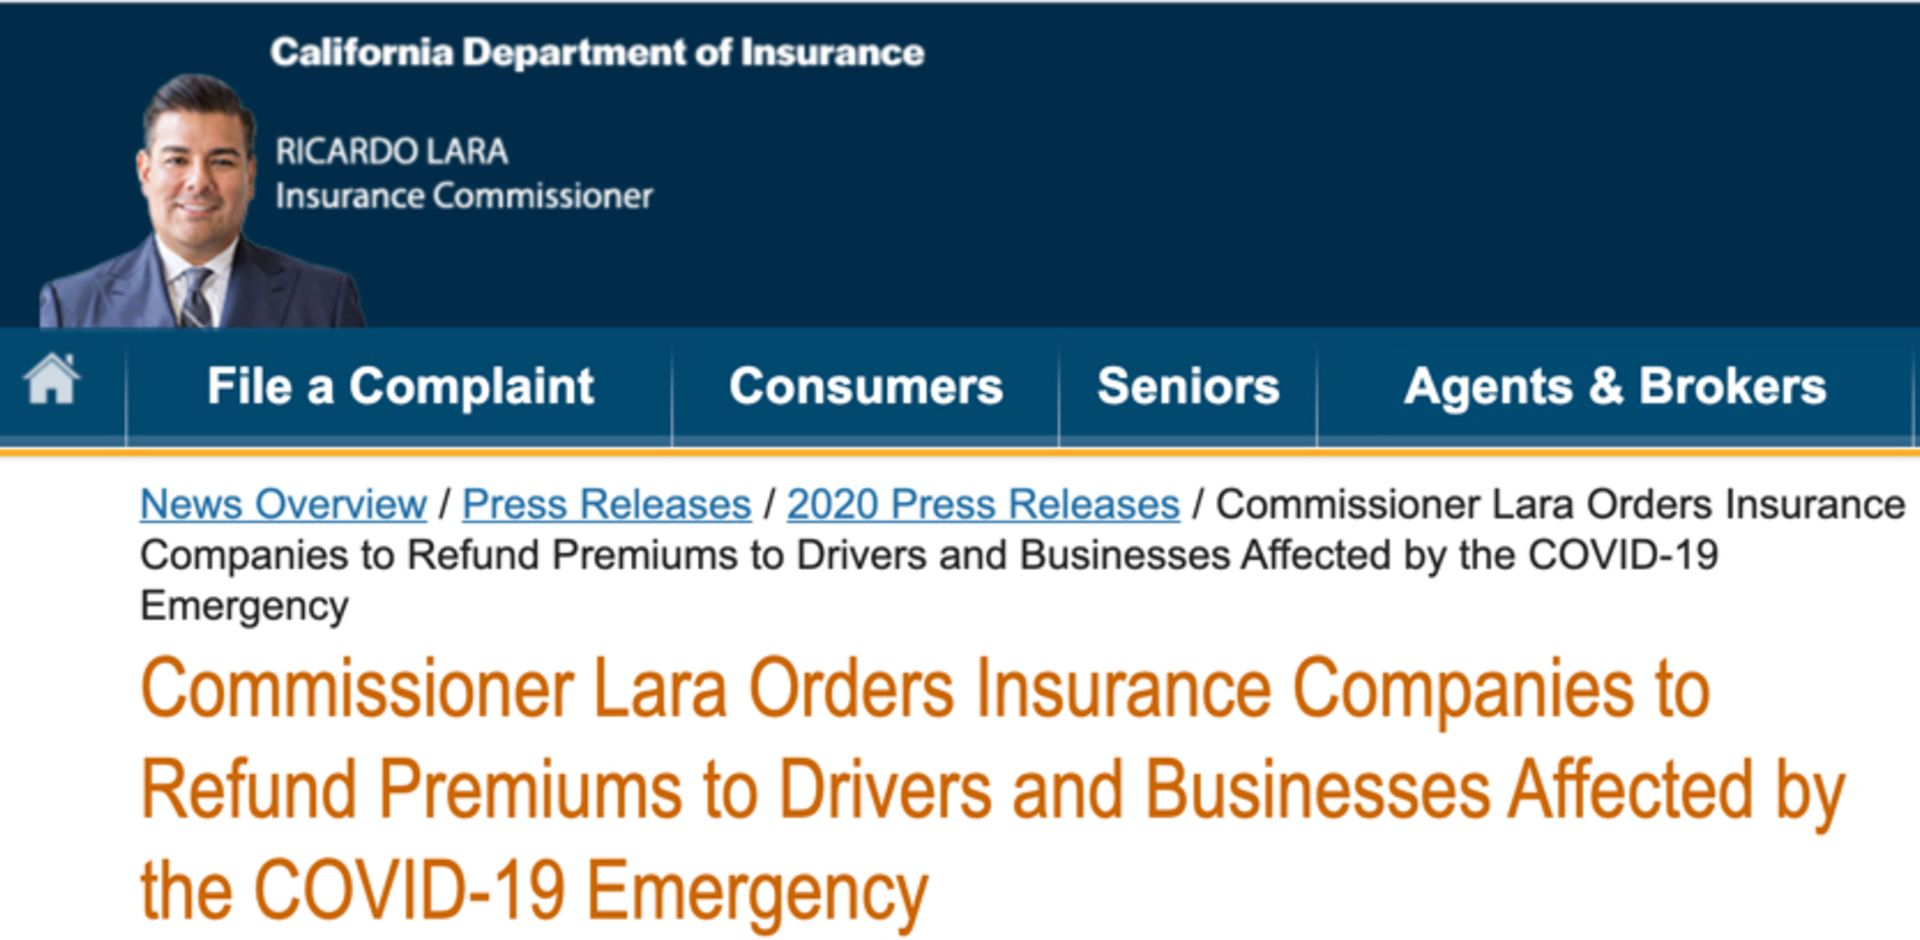 Insurance Companies in California ordered to reduce costs